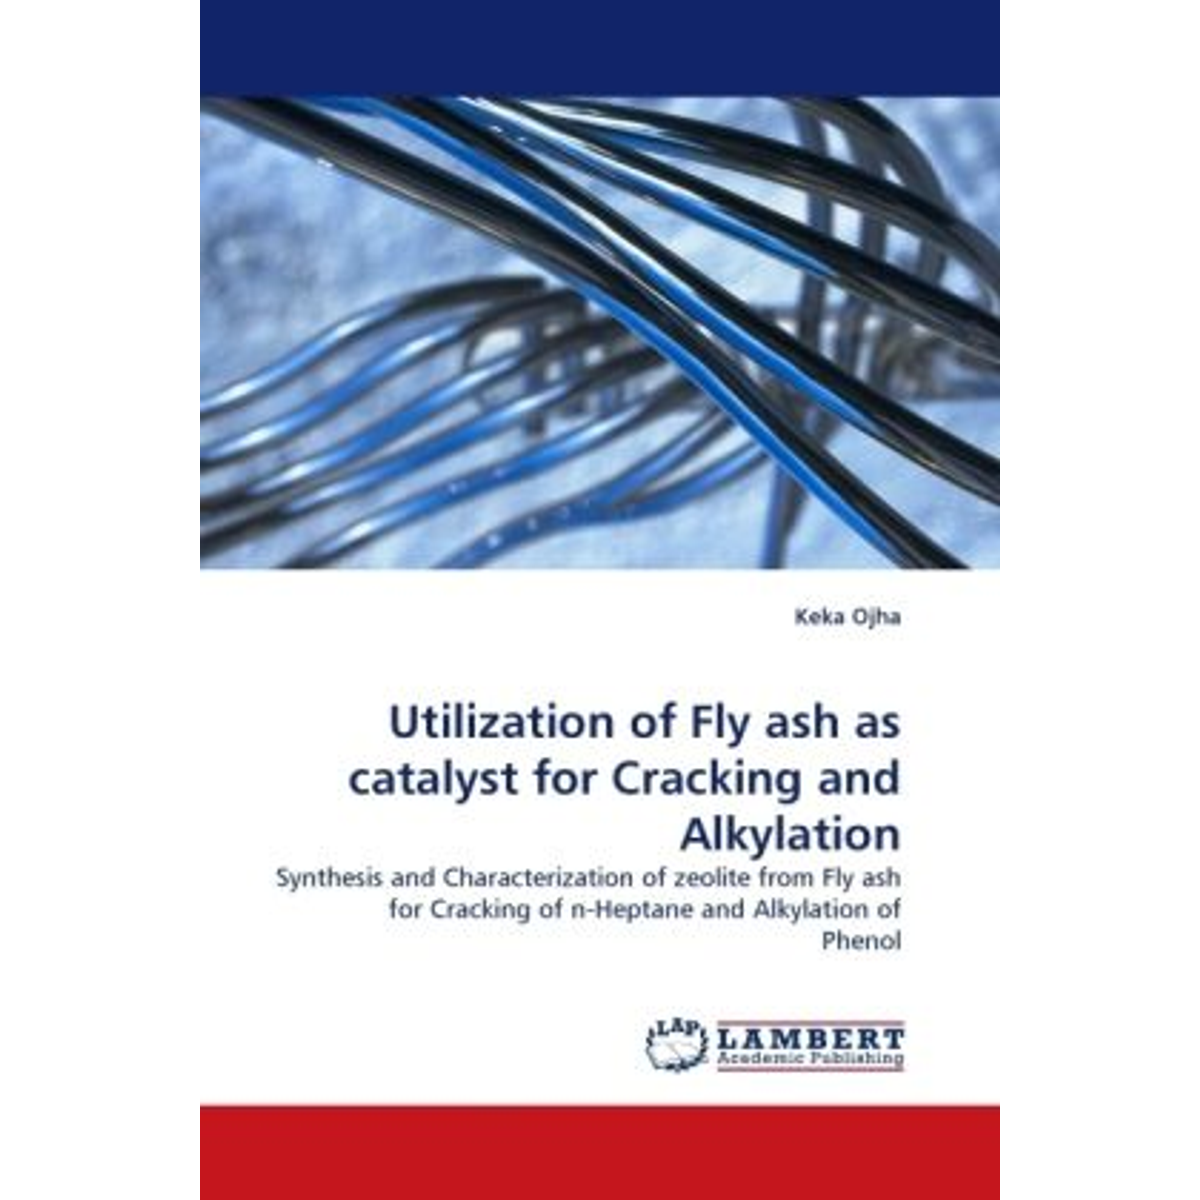 Utilization of Fly ash as catalyst for Cracking and Alkylation - Synthesis and Characterization of zeolite from Fly ash for Cracking of n-Heptane and Alkylation of Phenol